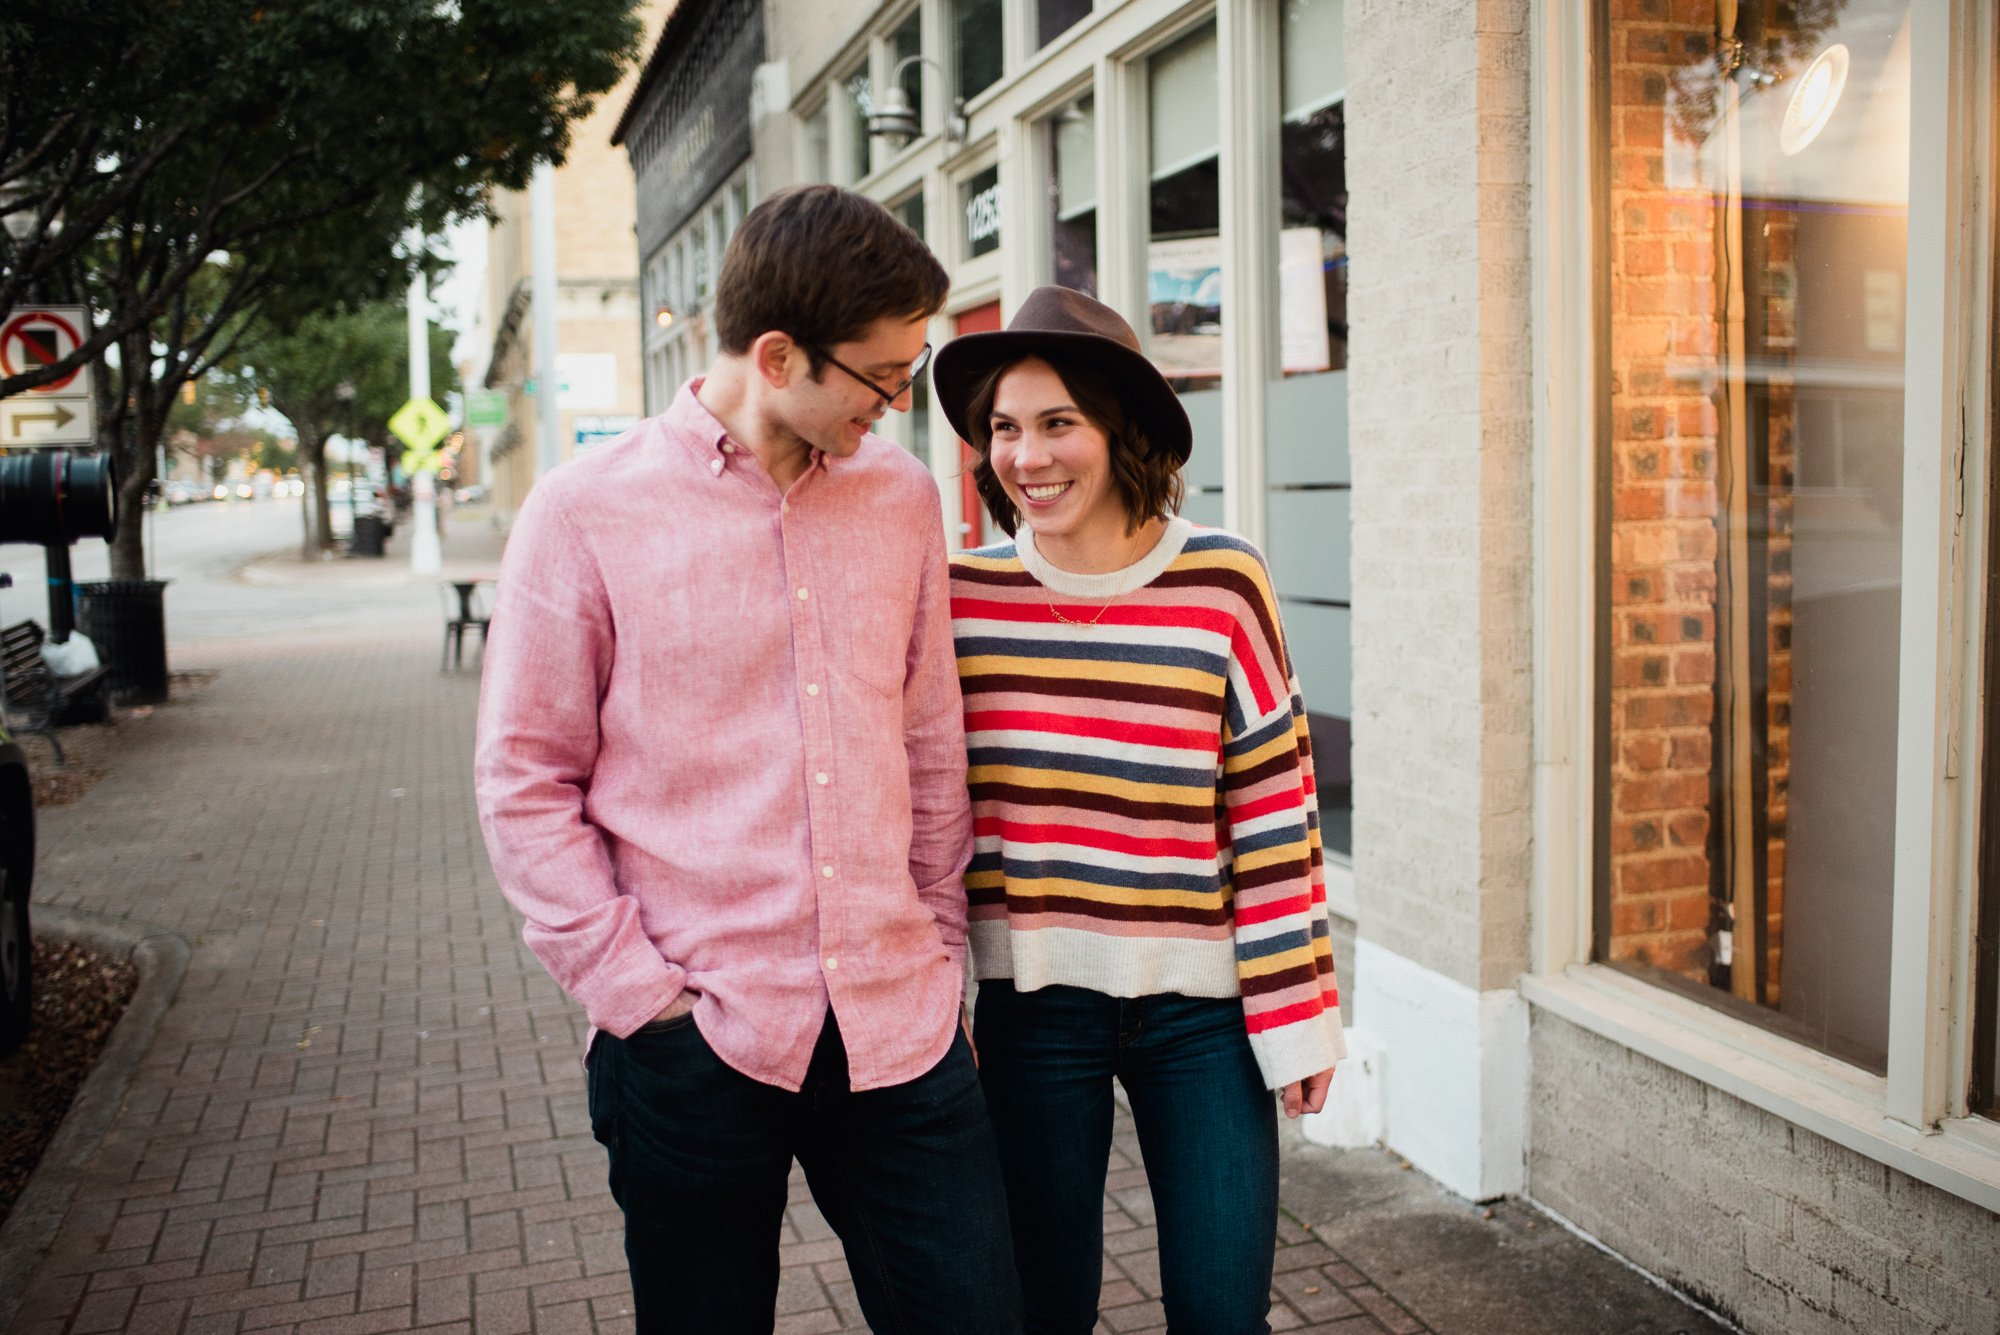 downtown fort worth engagement session, colorful engagement photos in downtown fort worth, magnolia avenue engagment session, austin wedding photographer